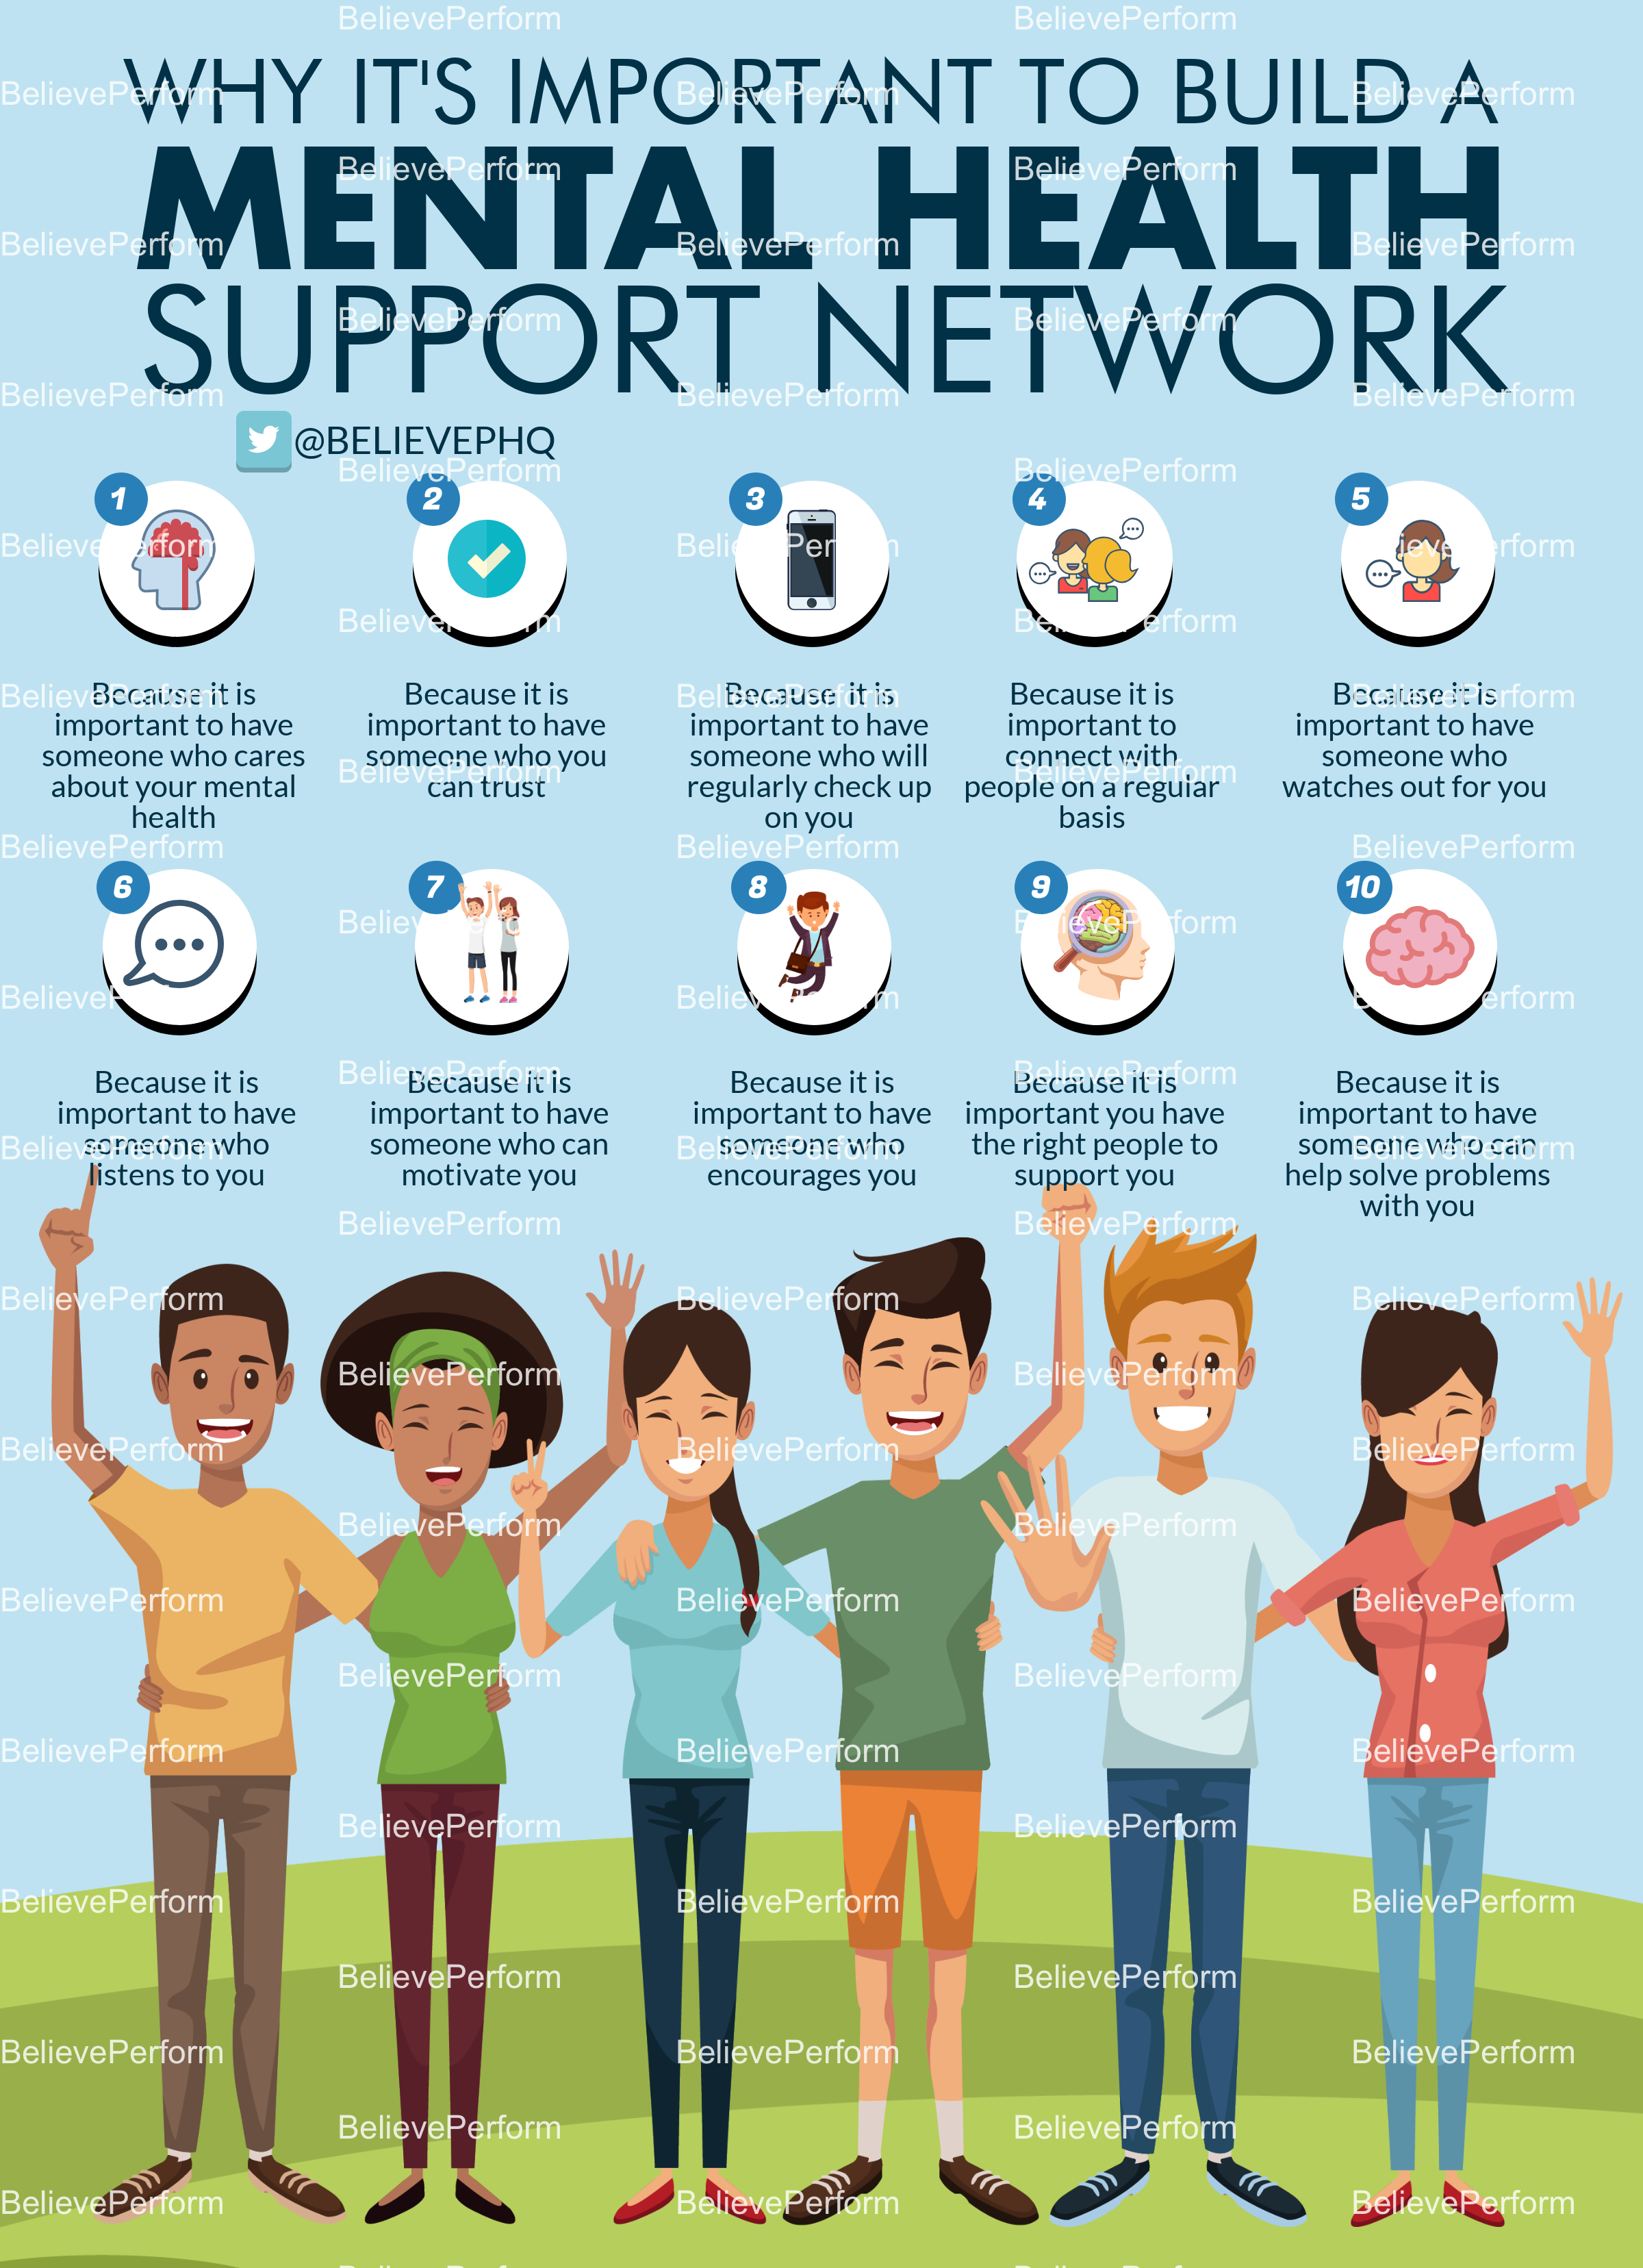 Why it's important to build a mental health support network